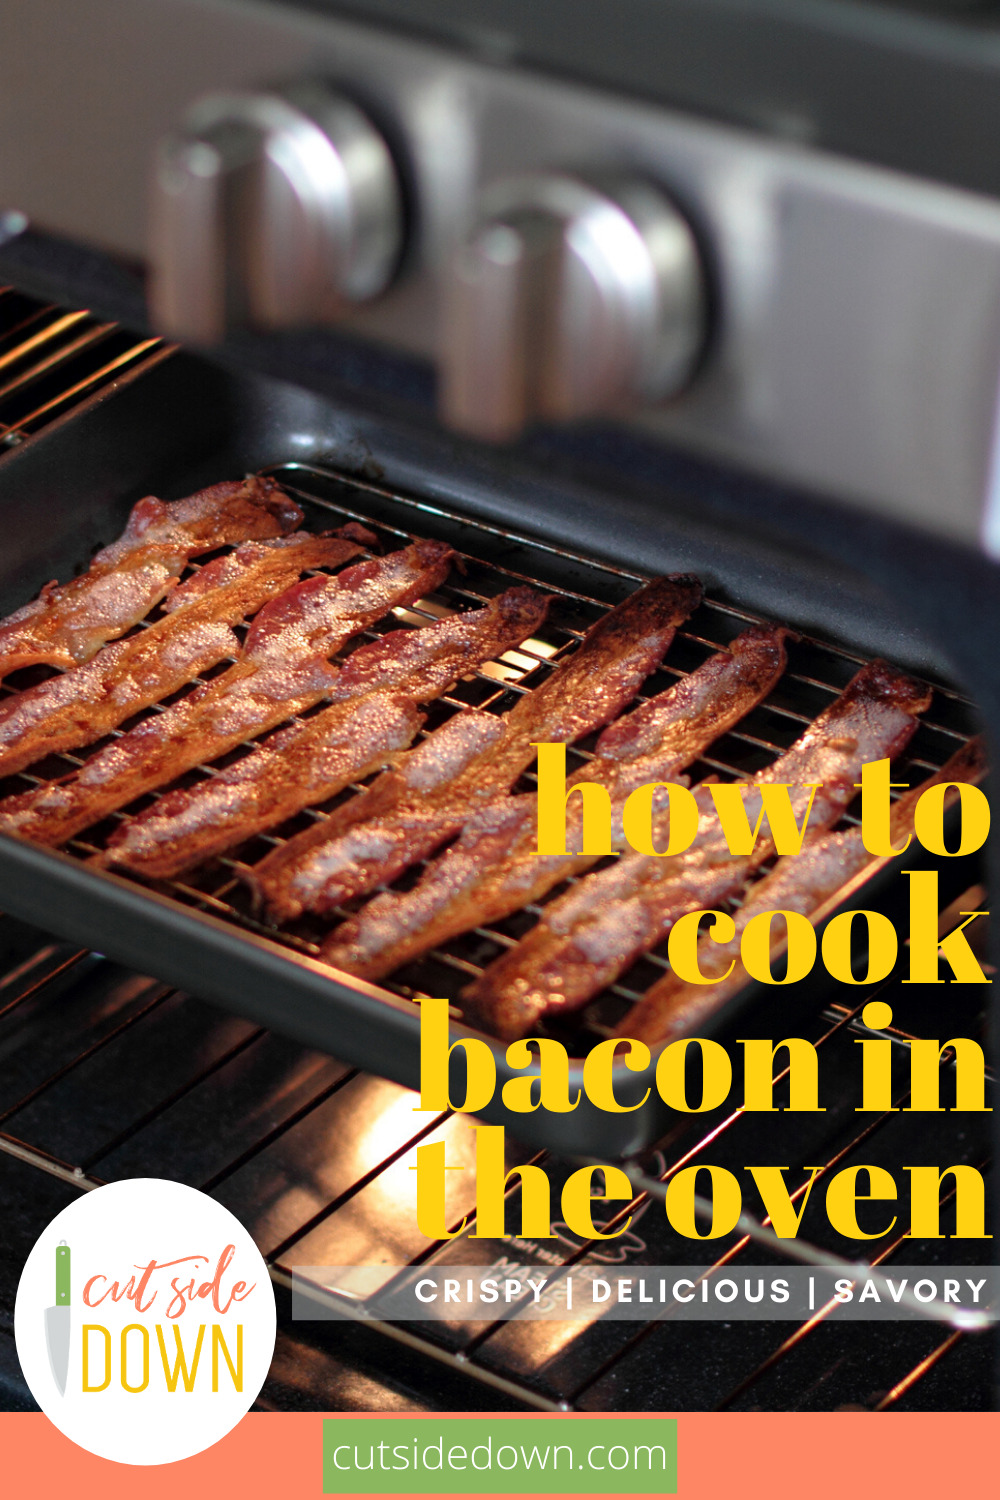 If you love bacon, you are going to have your mind blown when you learn how to cook bacon in the oven. It's easy, delicious and makes less mess. Give it a try. You know this is making you curious. Keep reading to learn how easy it is. #howtocookbaconintheoven #bacon #baconmakeseverythingbetter #cutsidedownblog